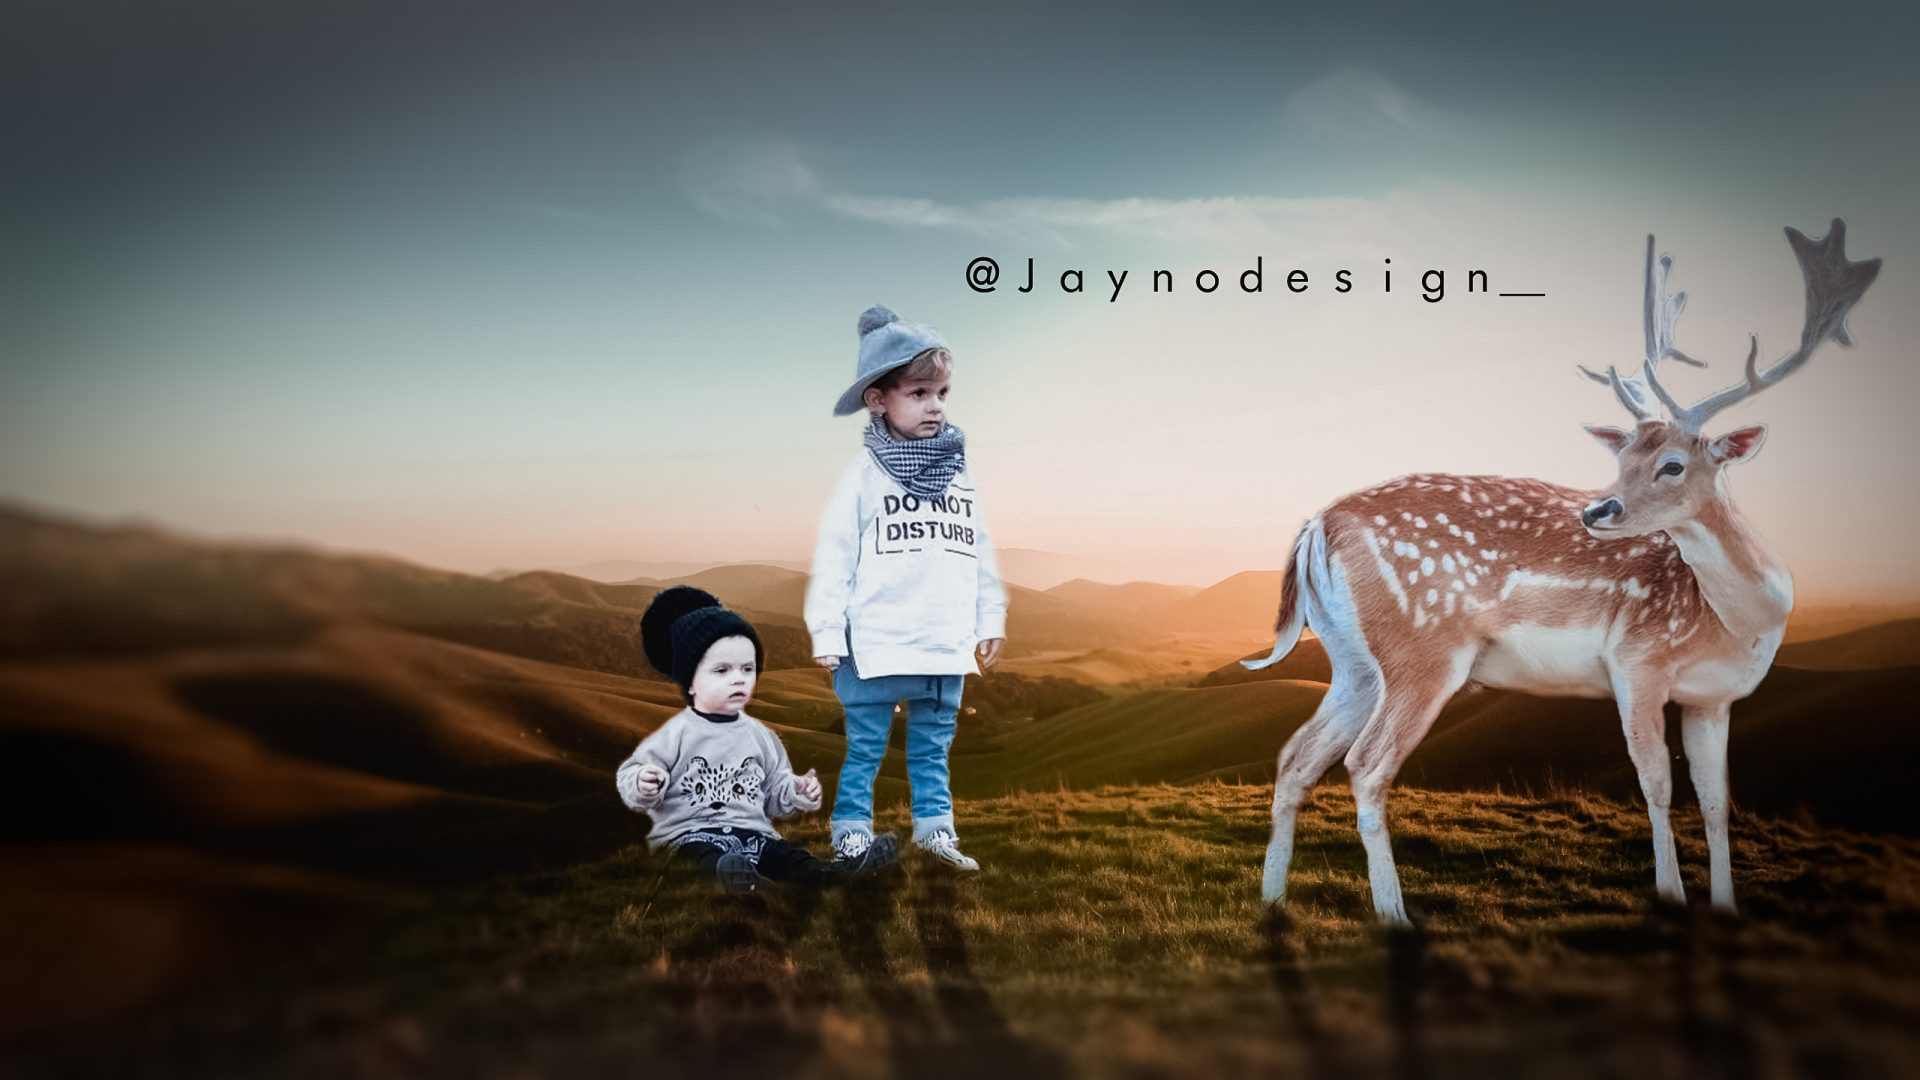 bamibiboys - Jayno Design - magical pictures & win